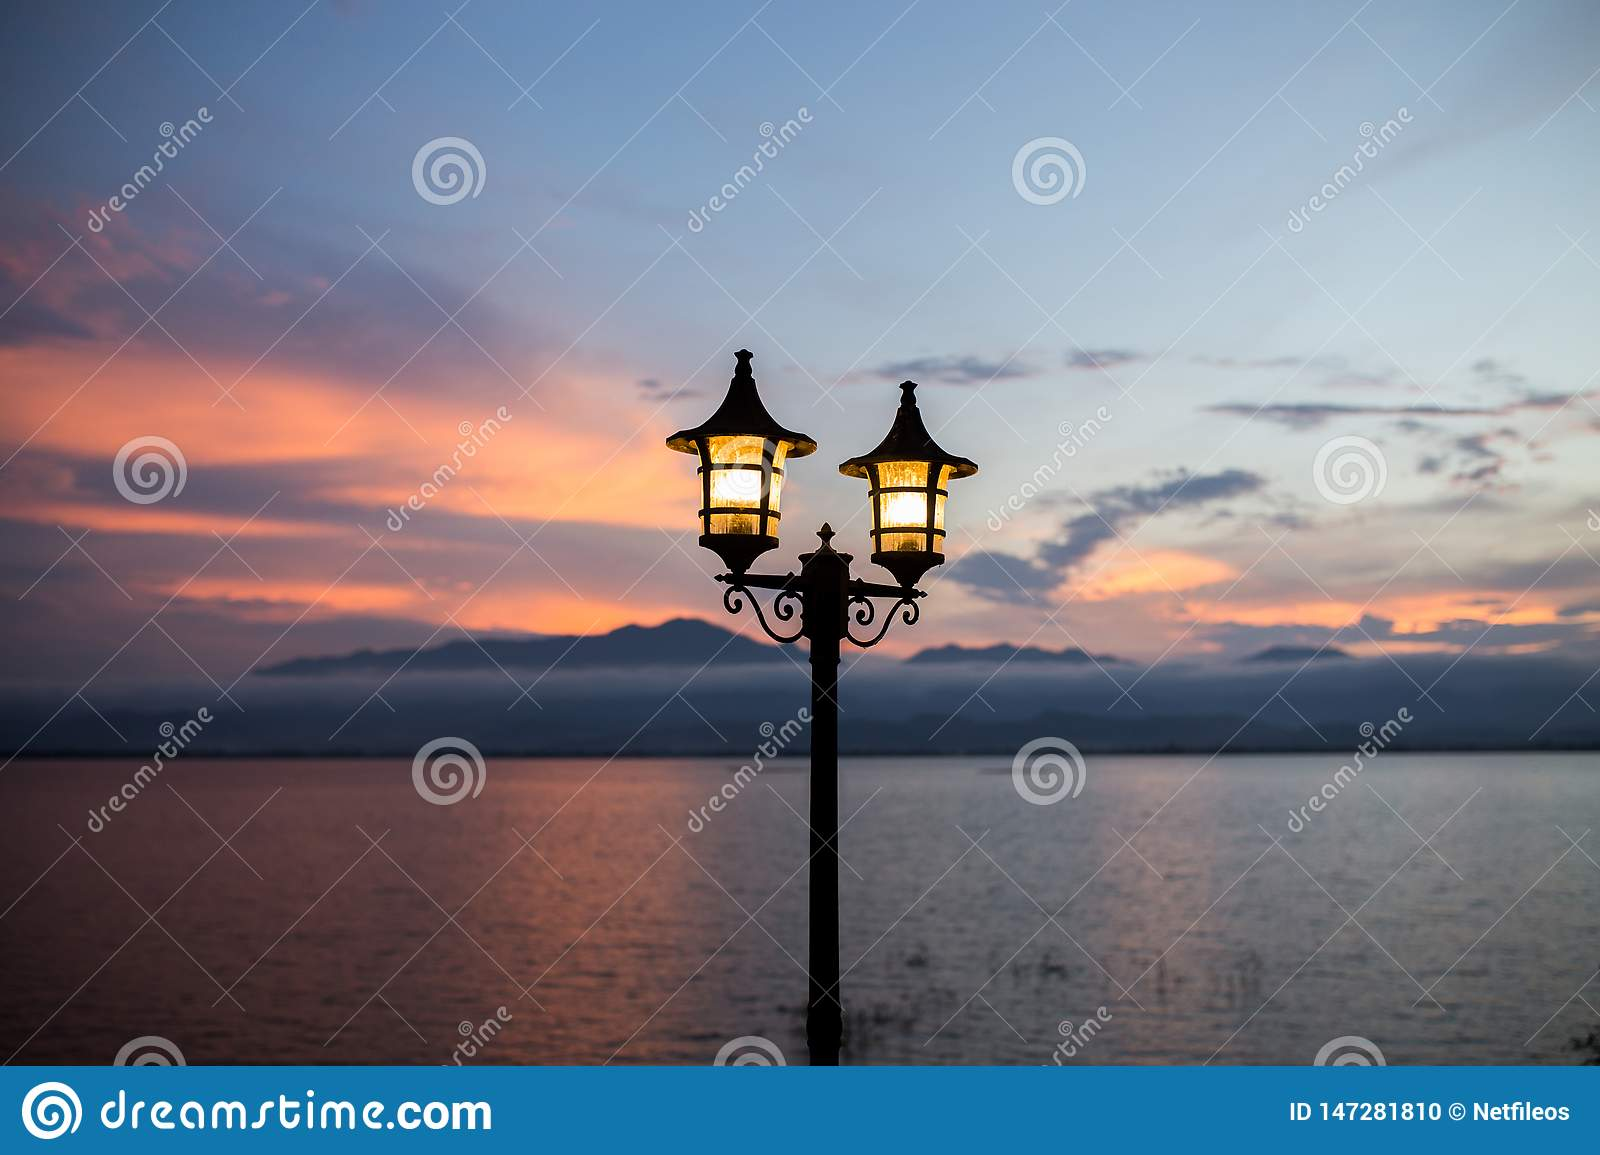 Light lantern in mountain background and twilight darkness after sunset time romantic atmospheric.